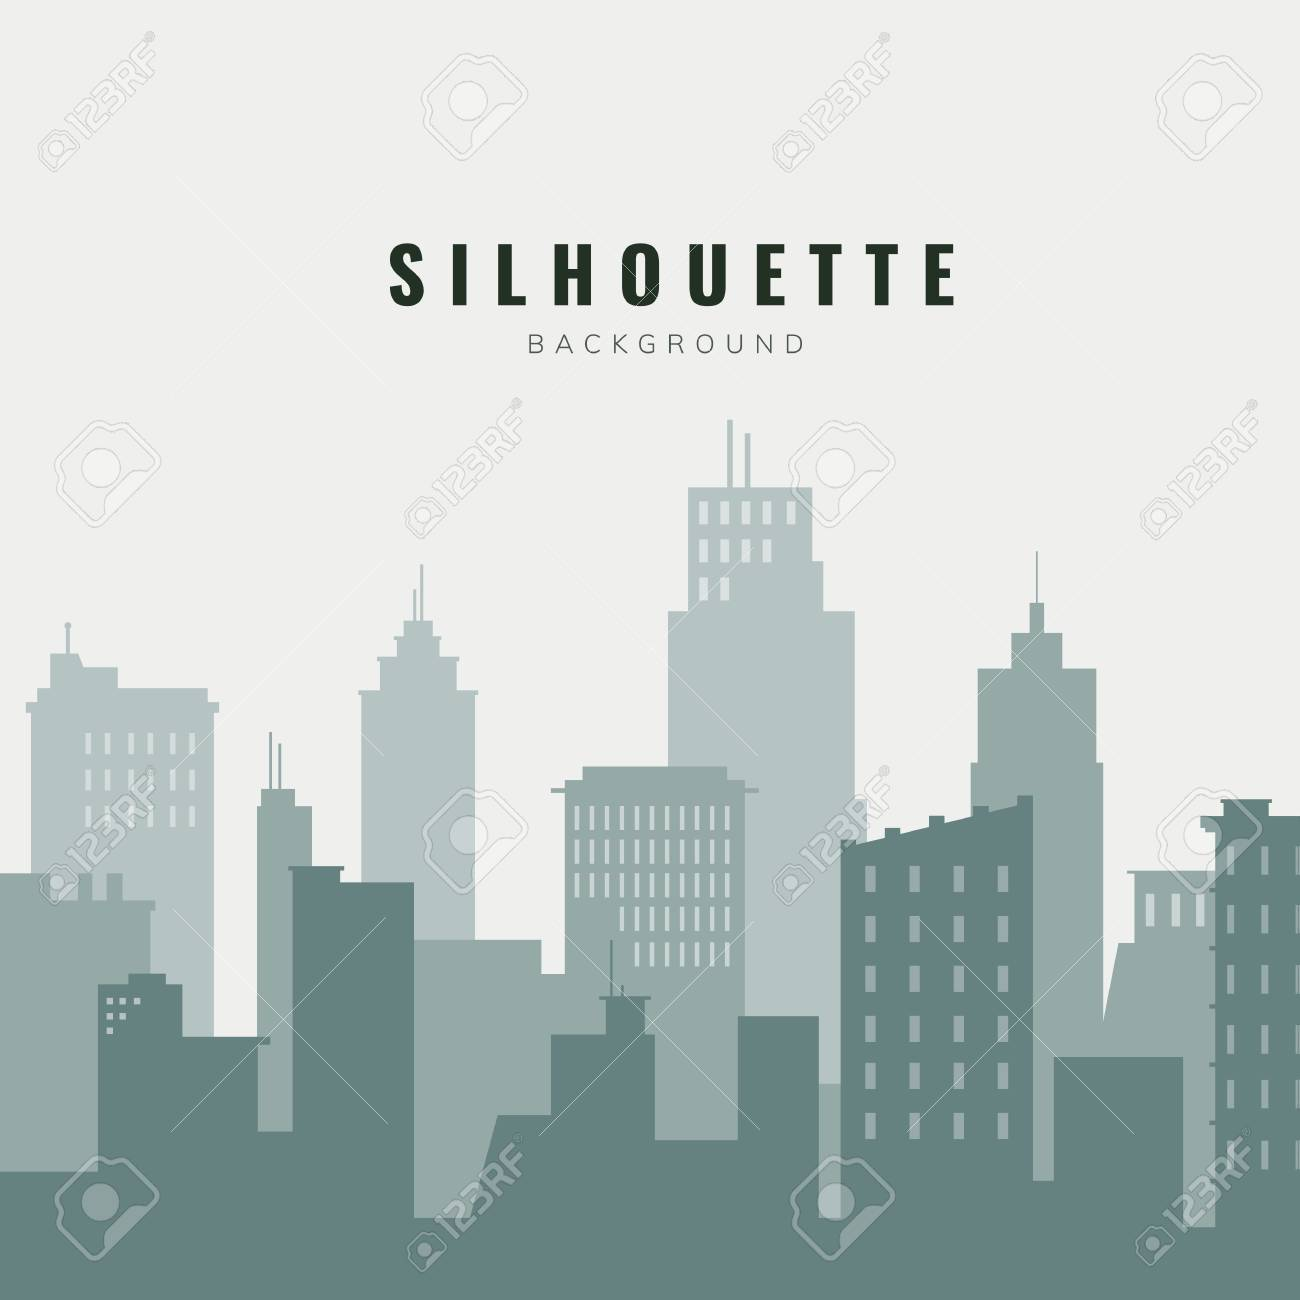 Green and beige silhouette cityscape background vector - 122626841